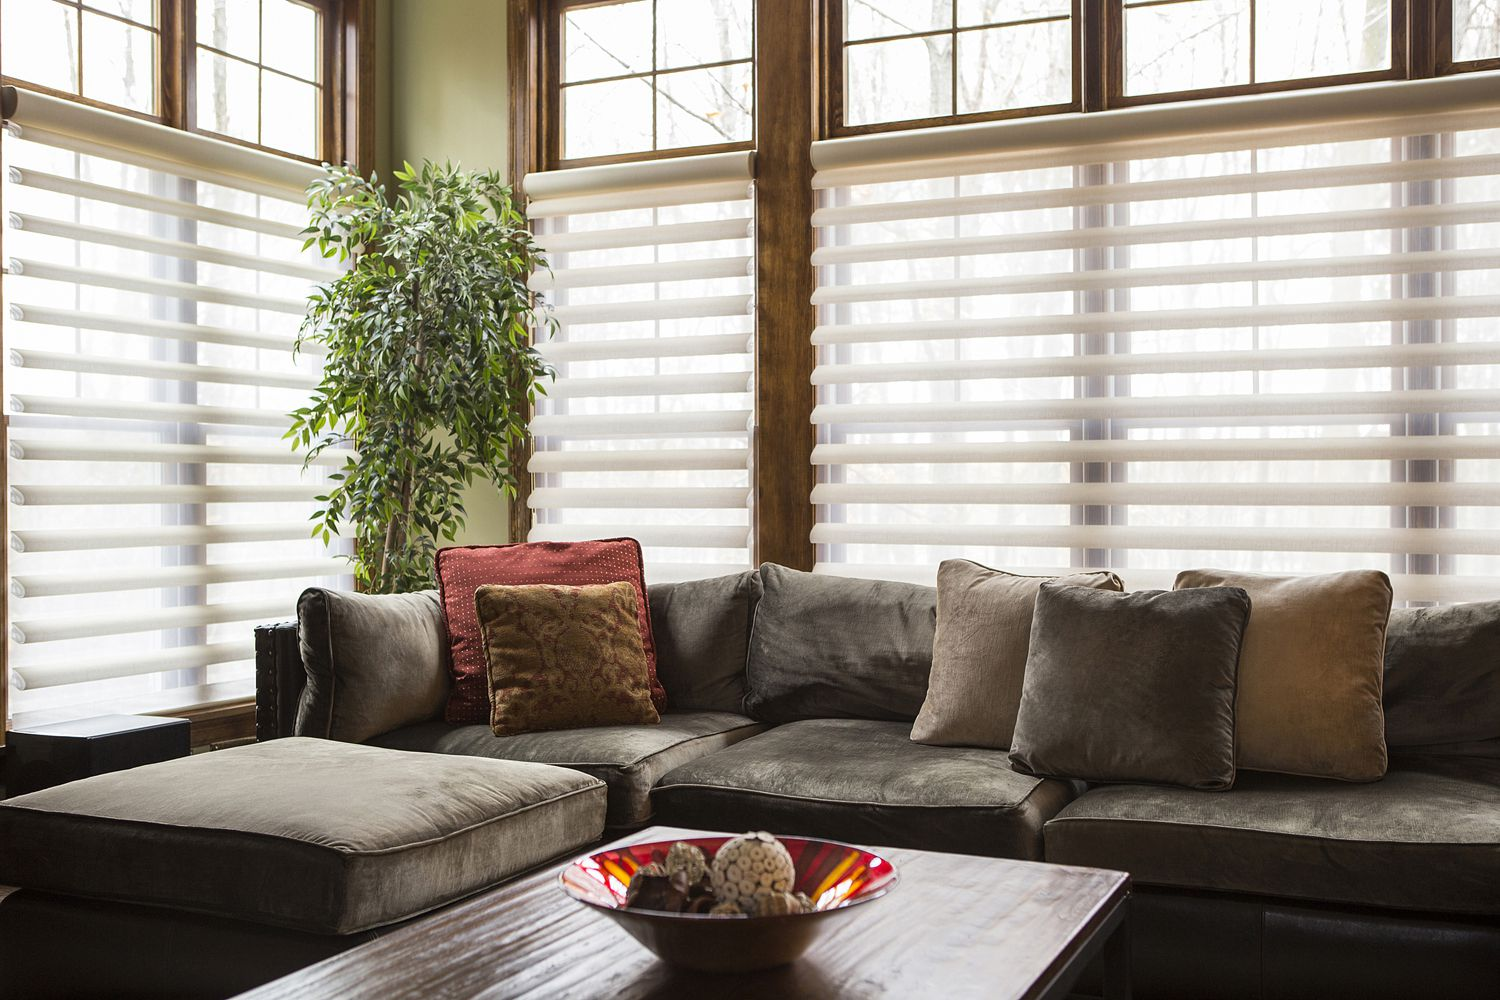 How to clean your living room in 5 minutes - Sofa And Blinds In Living Room